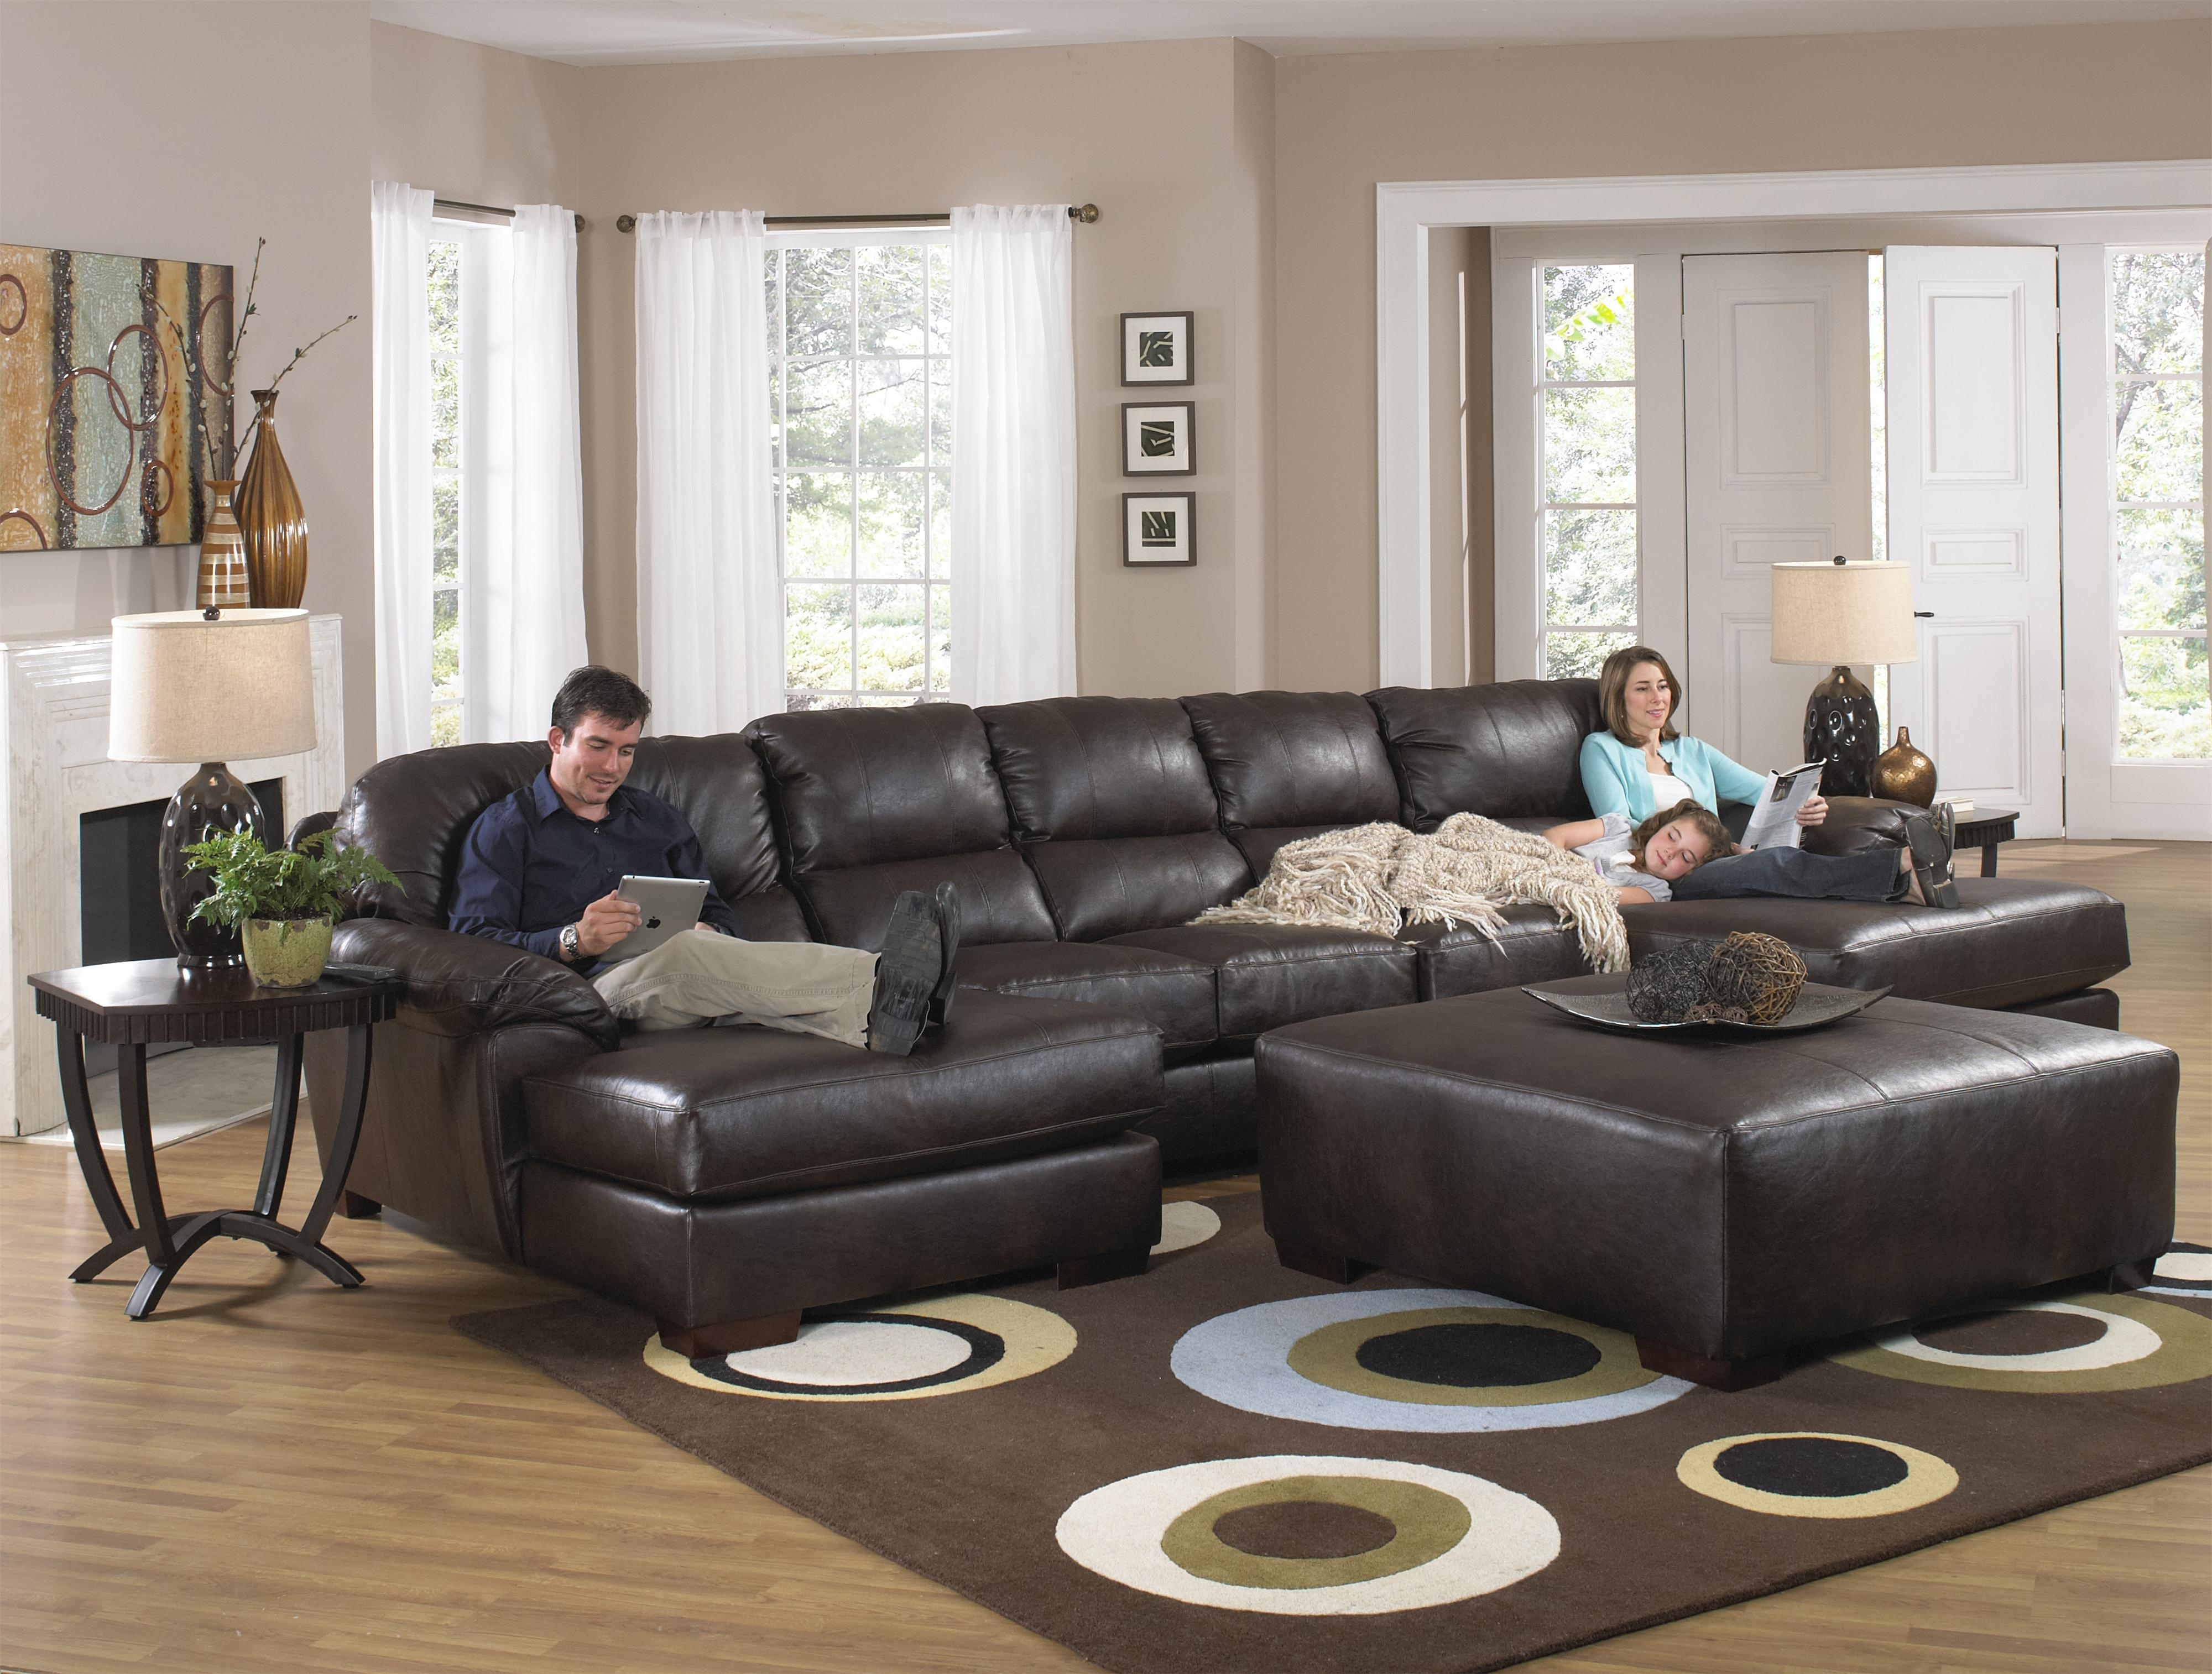 Sectional Sofas With Chaise With Famous Sofa : Beautiful Large Sectional Sofa With Chaise L Shaped Cream (View 15 of 20)